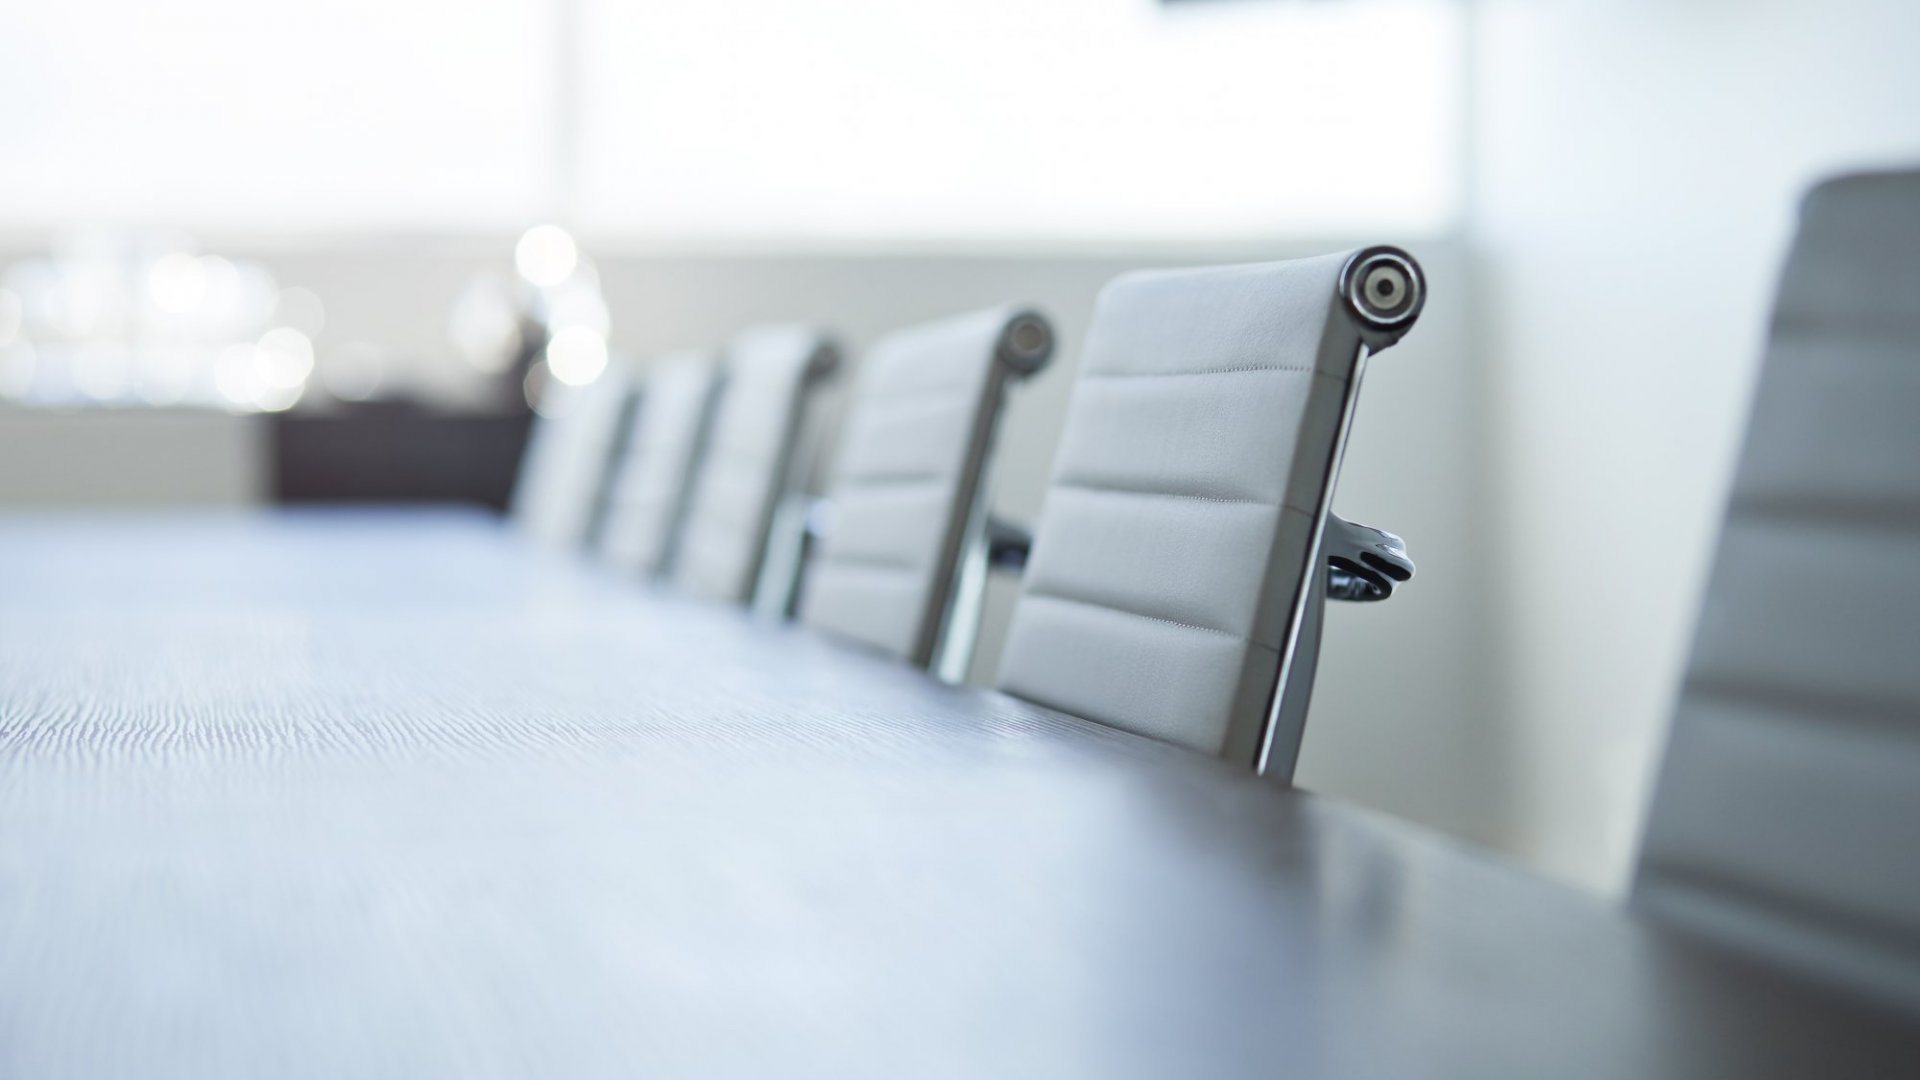 Want Meetings That Actually Get Results? Get Rid of These 5 Issues